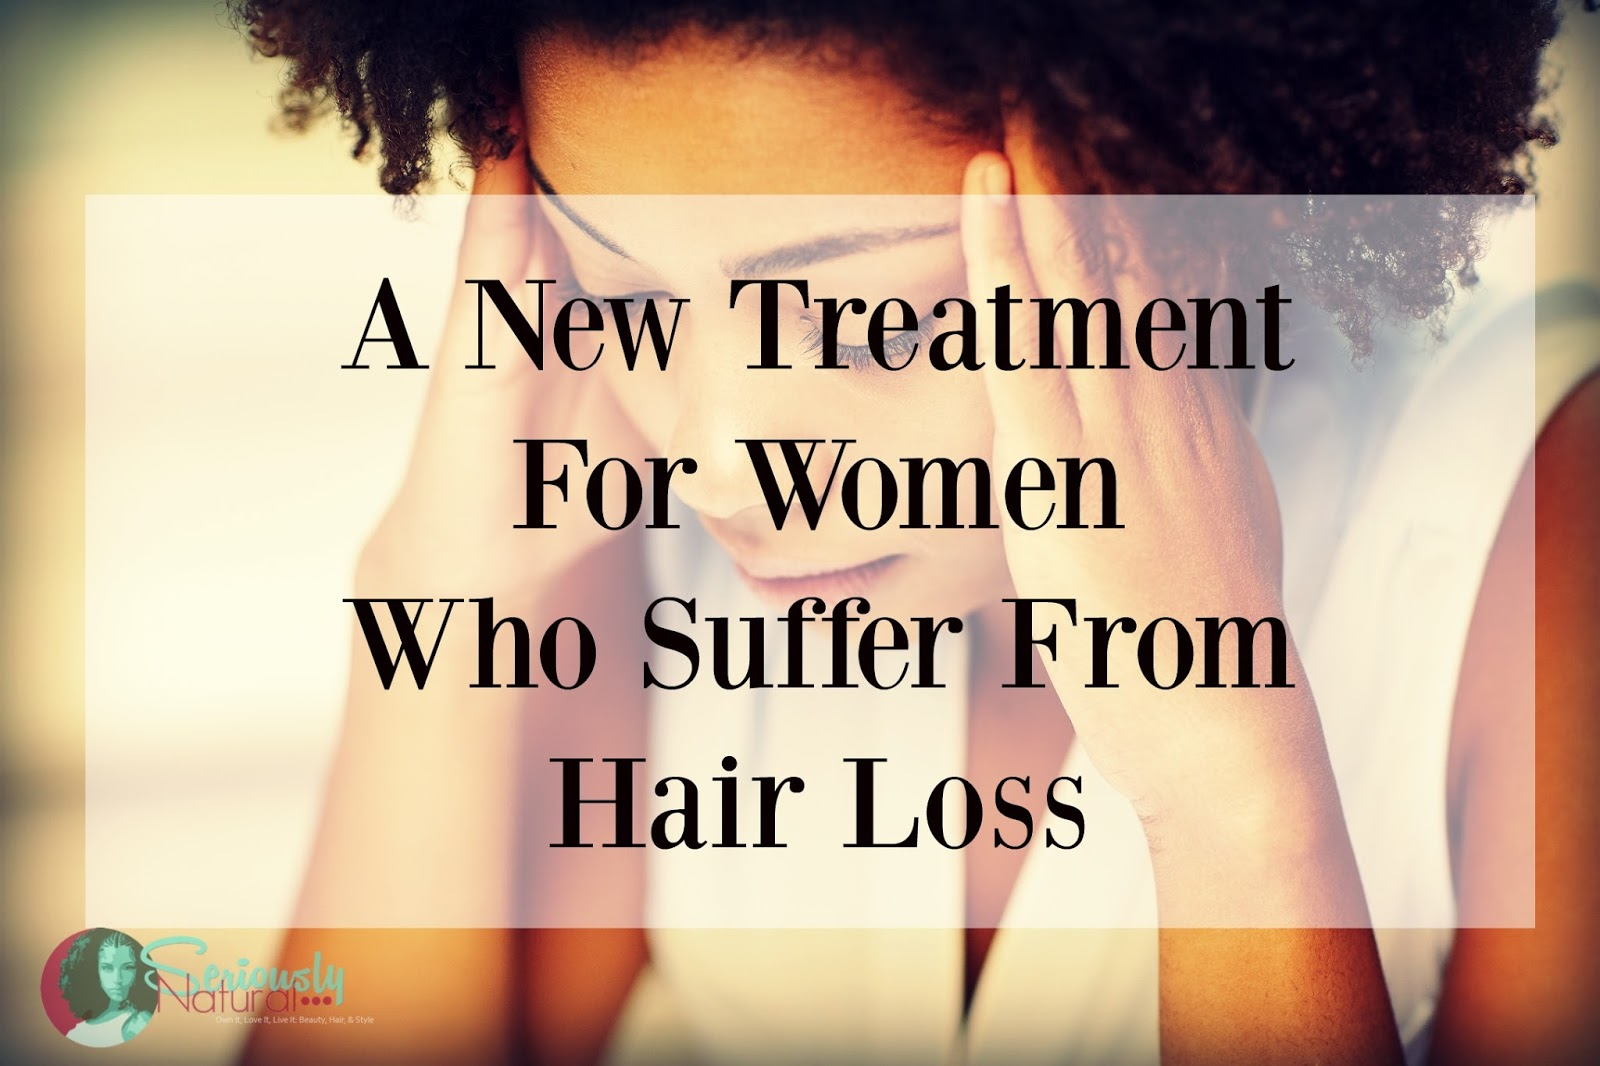 A New Treatment For Women Who Suffer From Hair Loss